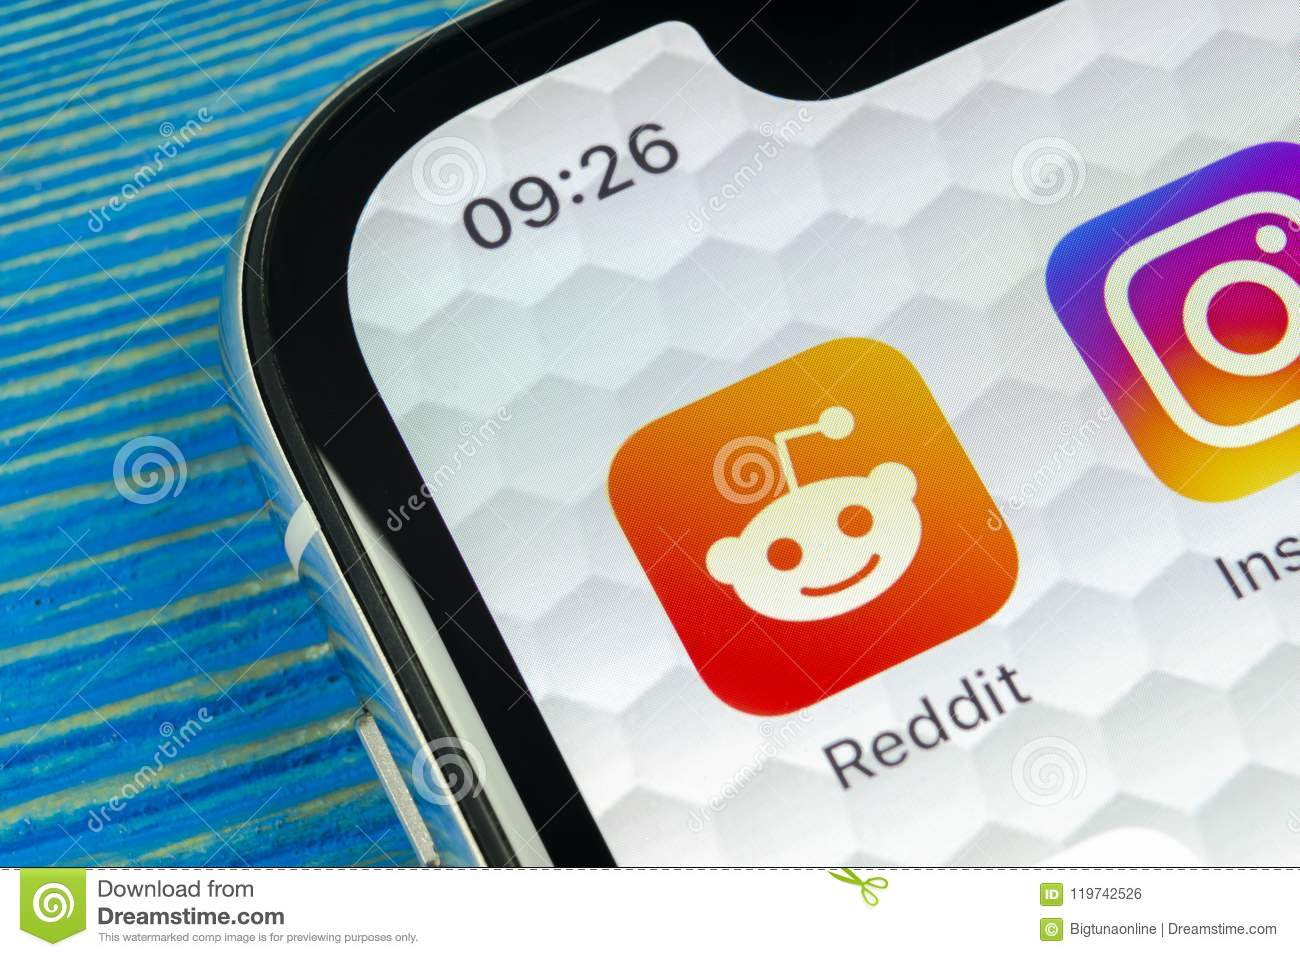 Reddit Application Icon On Apple IPhone X Smartphone Screen Close-up